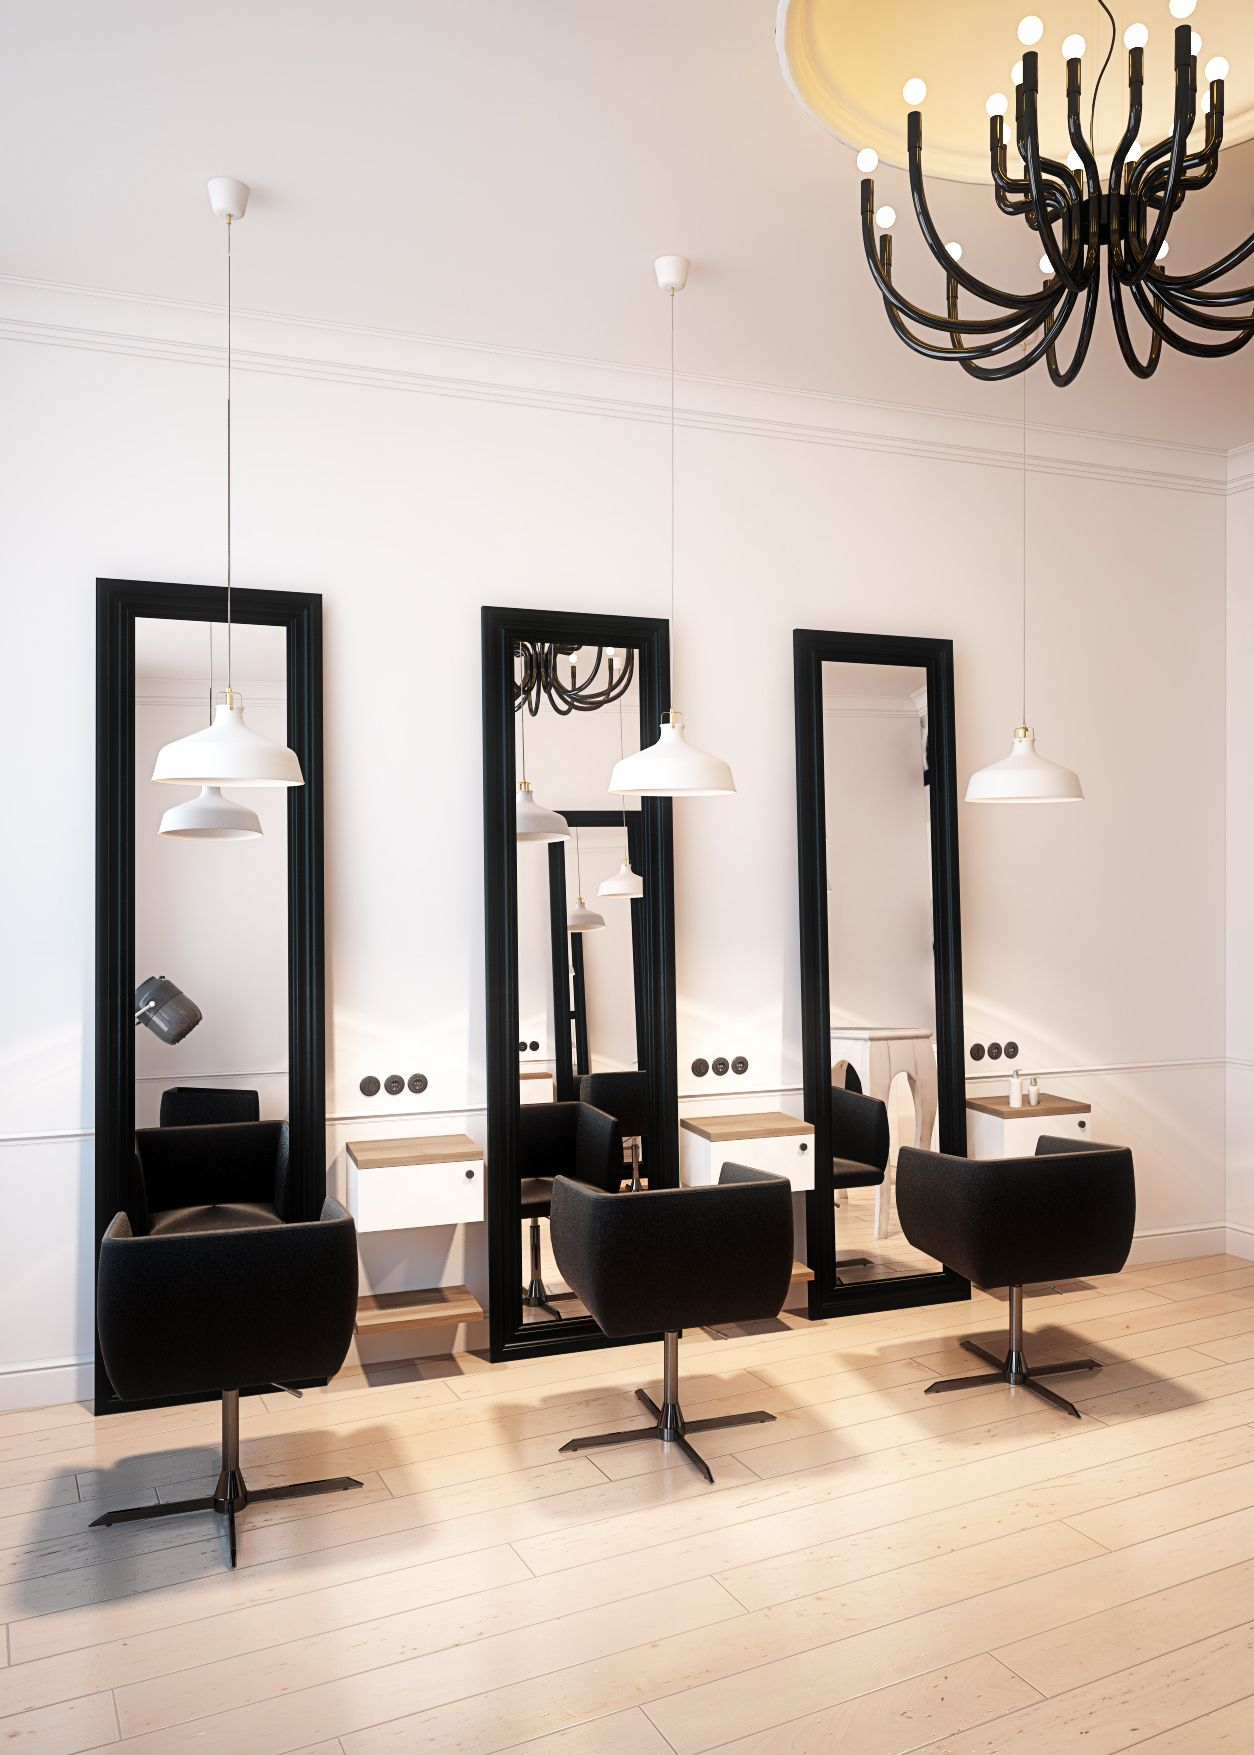 Hairdresser Interior Design In Bytom Poland Archi Group Salon Fryzjerski W Bytomiu Salon Interior Design Beauty Salon Interior Beauty Salon Decor